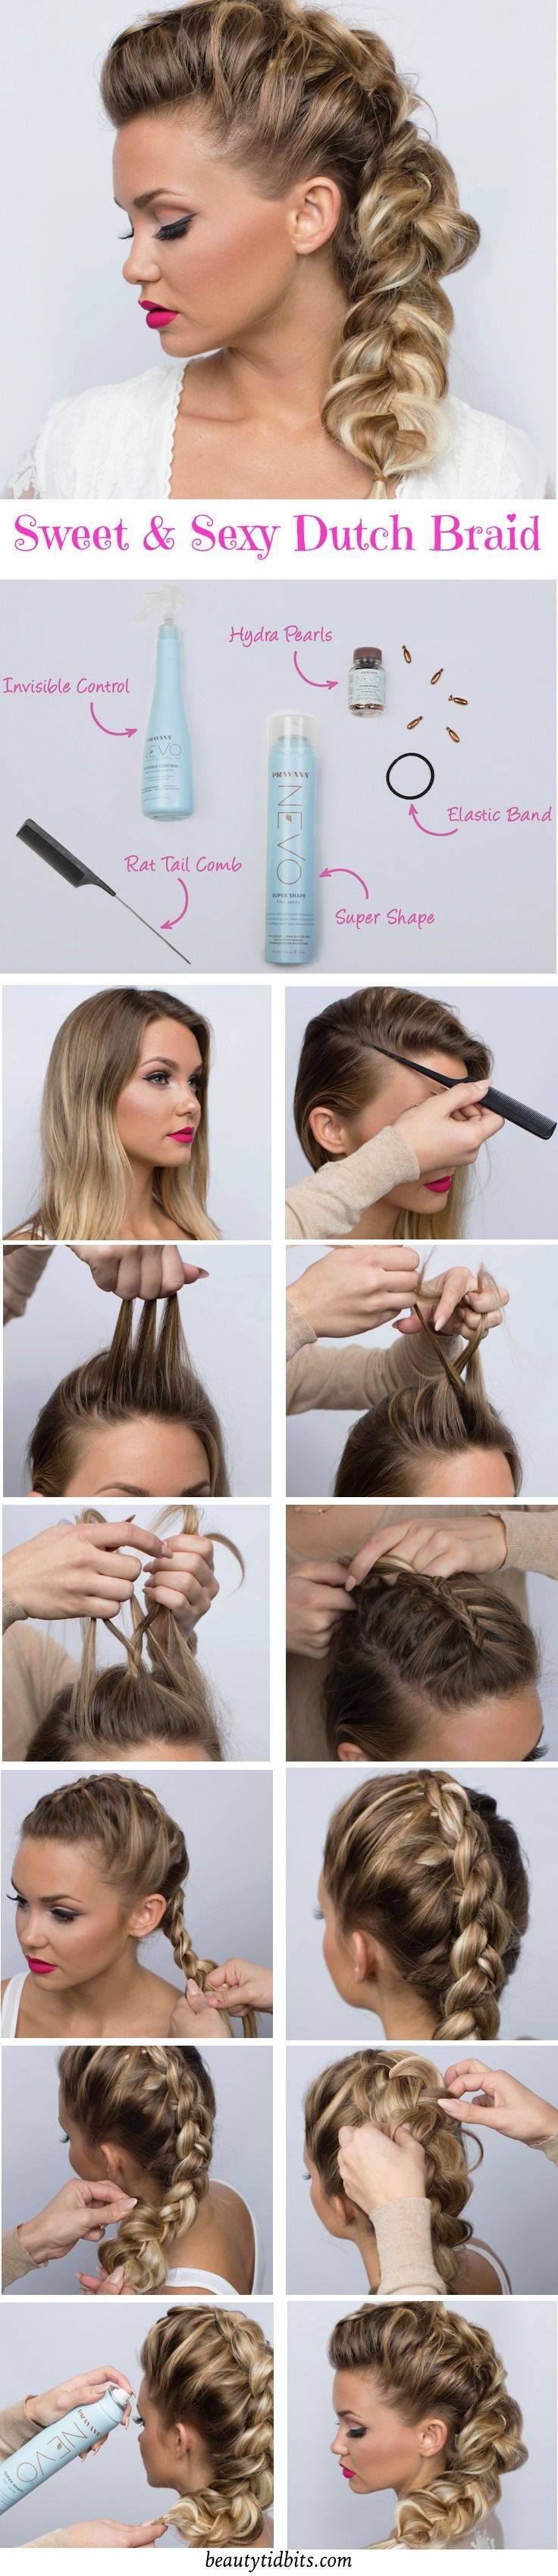 Faux Hawk Hairstyle Tutorial